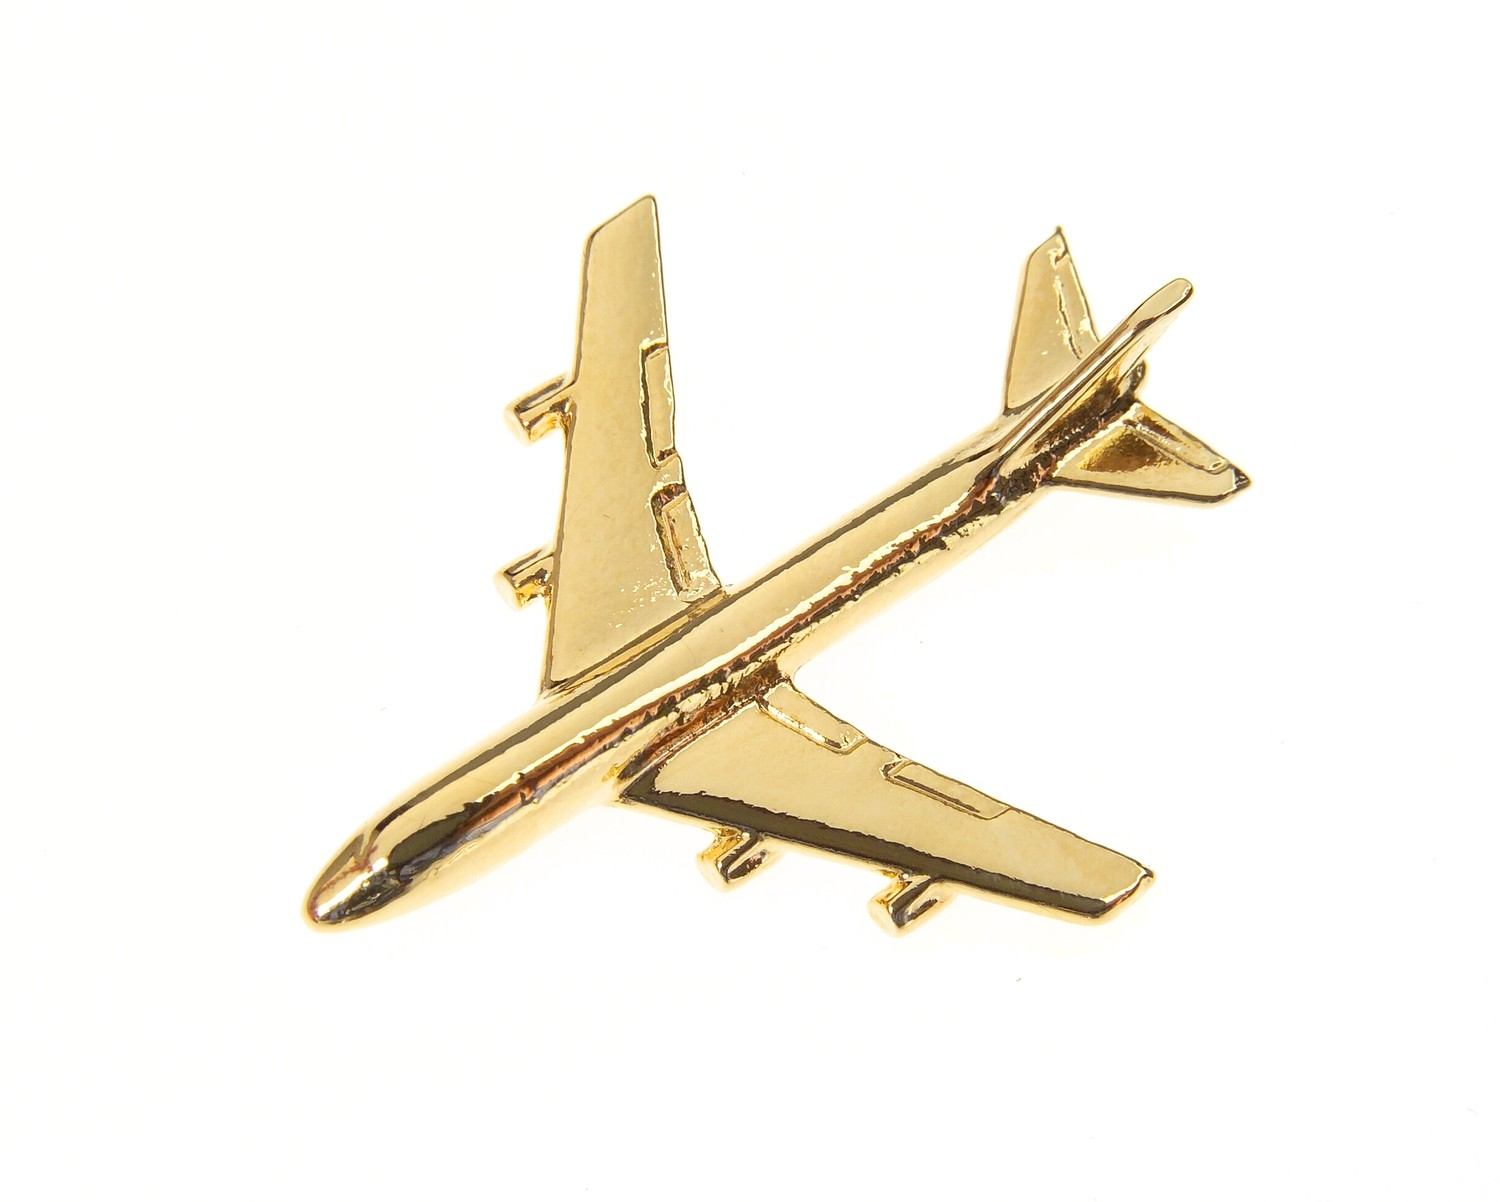 Boeing 747 Gold Plated Tie / Lapel Pin